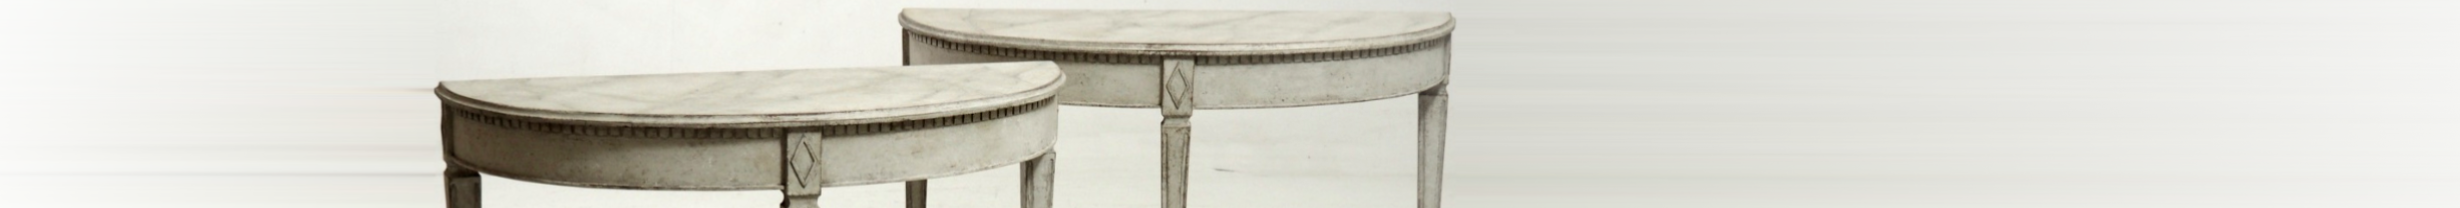 Gustavian demi lune tables Swedish.png